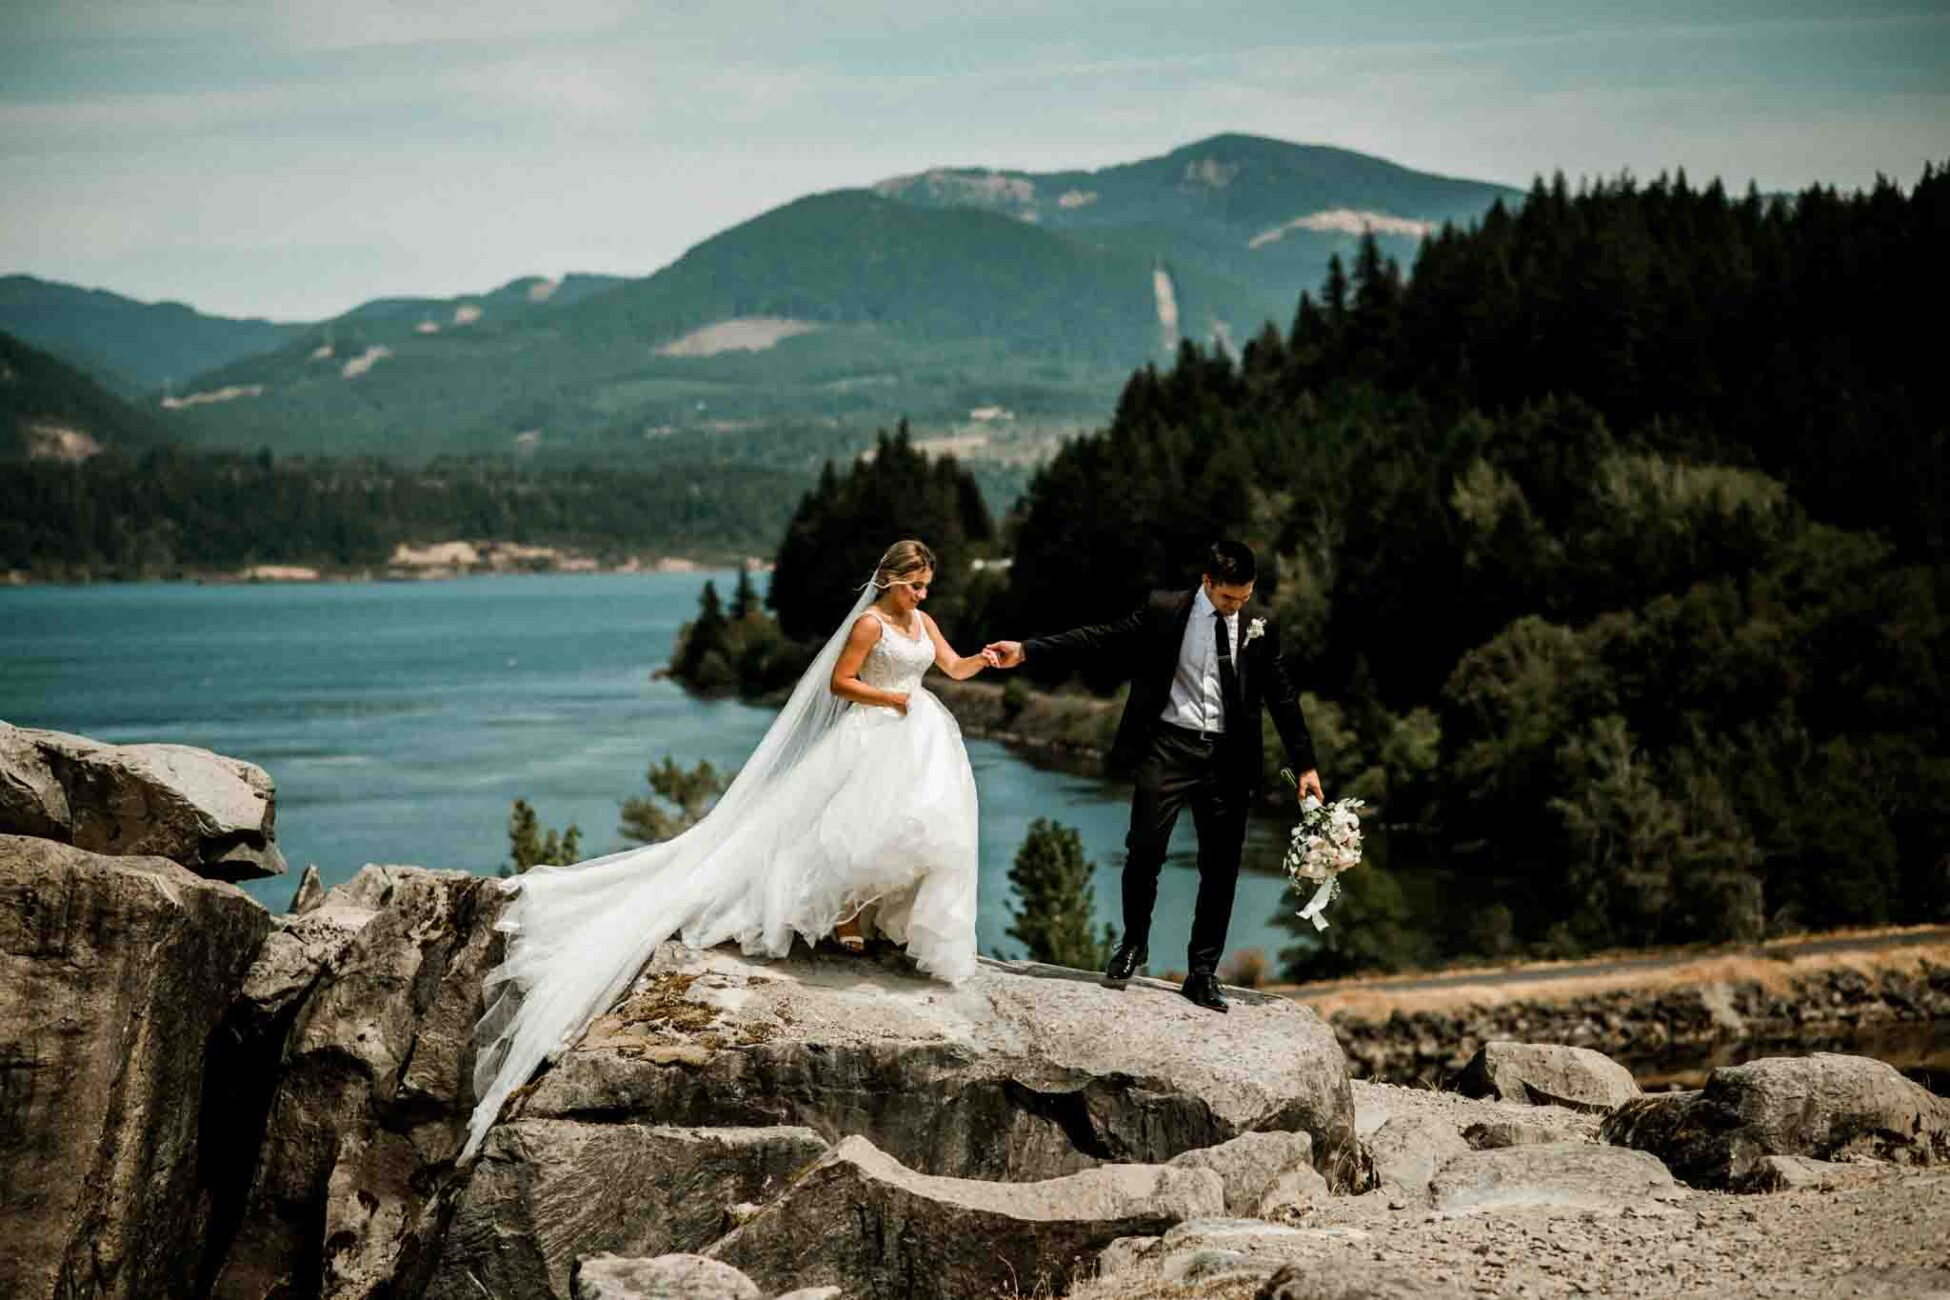 Incredible gorge river views with beautiful couple at Black Pearl on the Columbia Wedding day